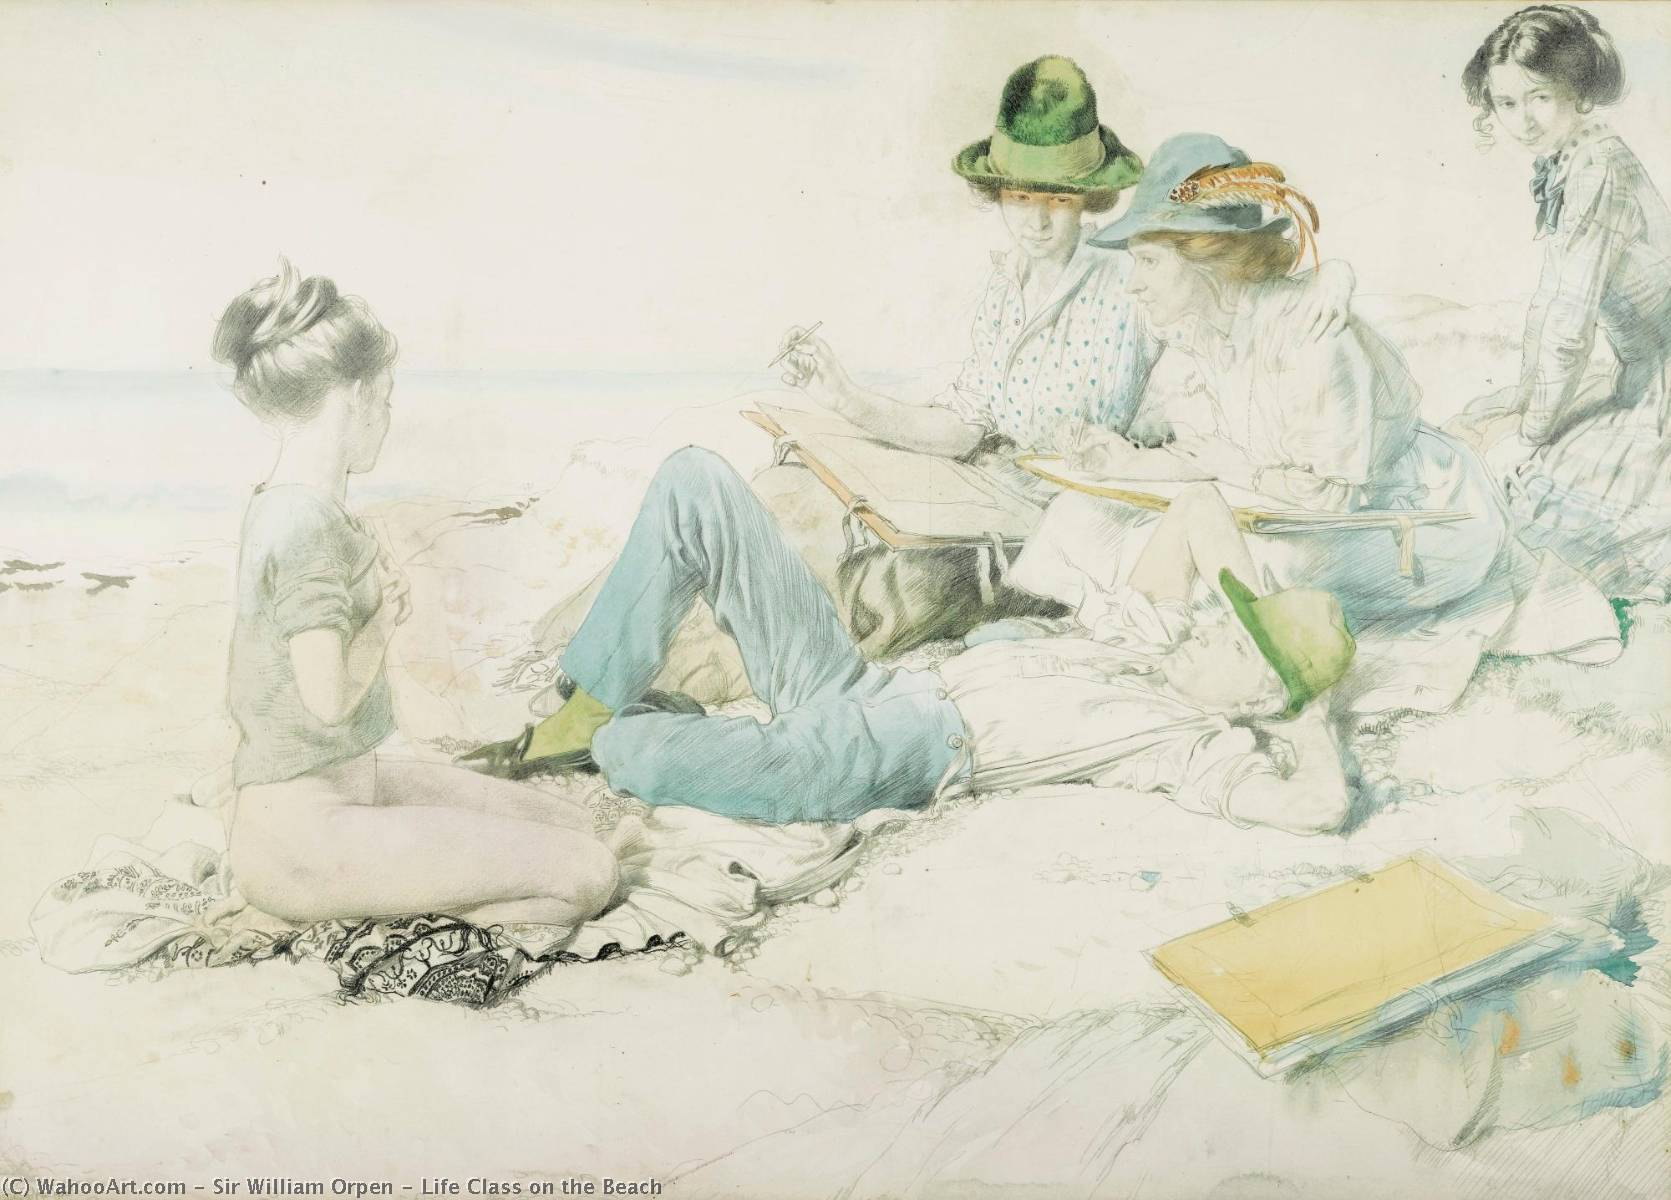 vie classe  sur  la  plage , aquarelle de William Newenham Montague Orpen (1878-1931, Ireland)